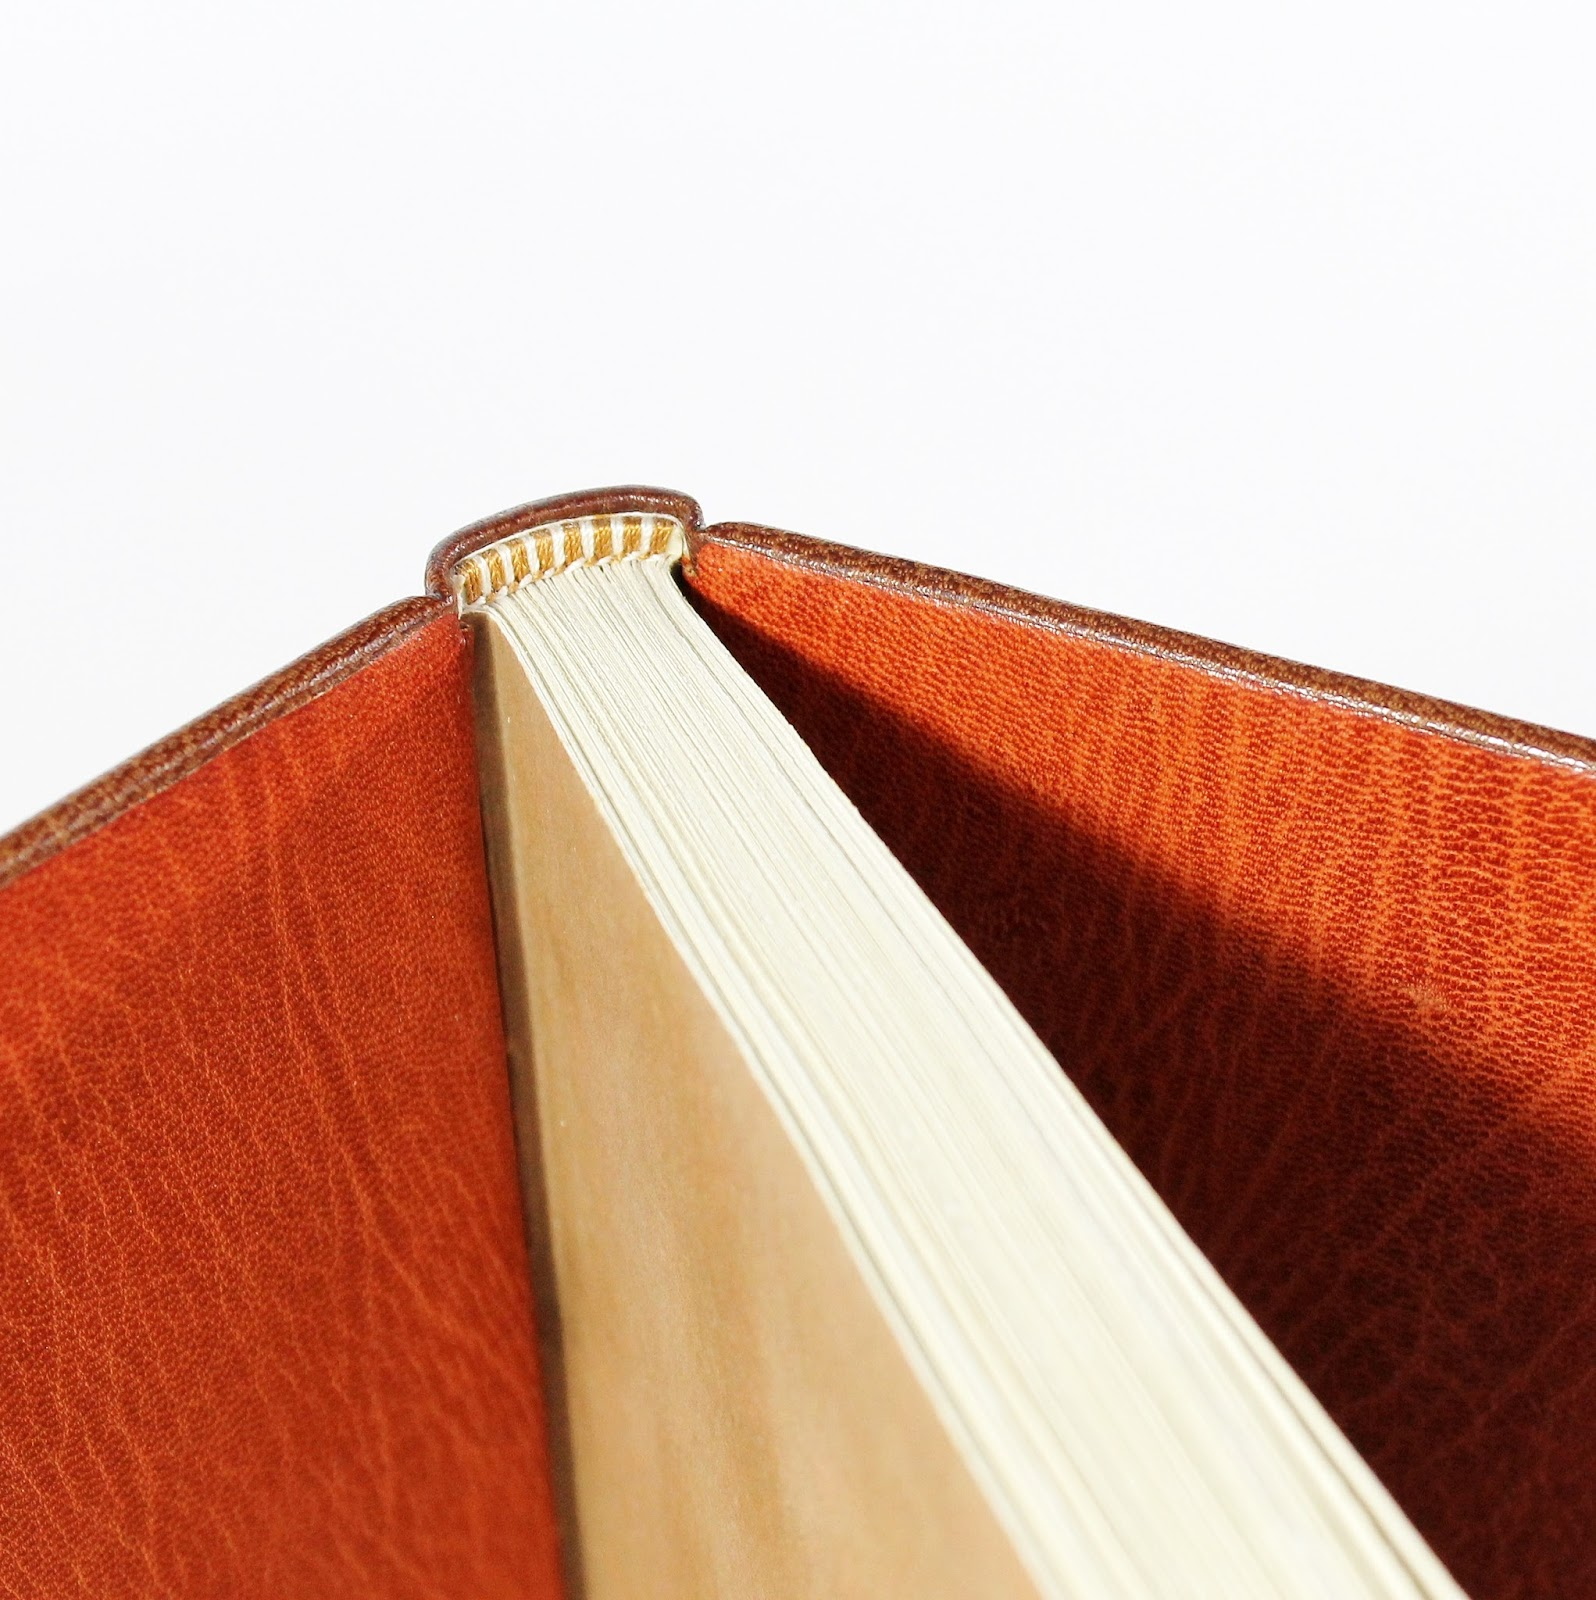 How did i become a bookbinder part 2 paperiaarre full leather binding with leather doublures kaija rantakari paperiaarre solutioingenieria Gallery